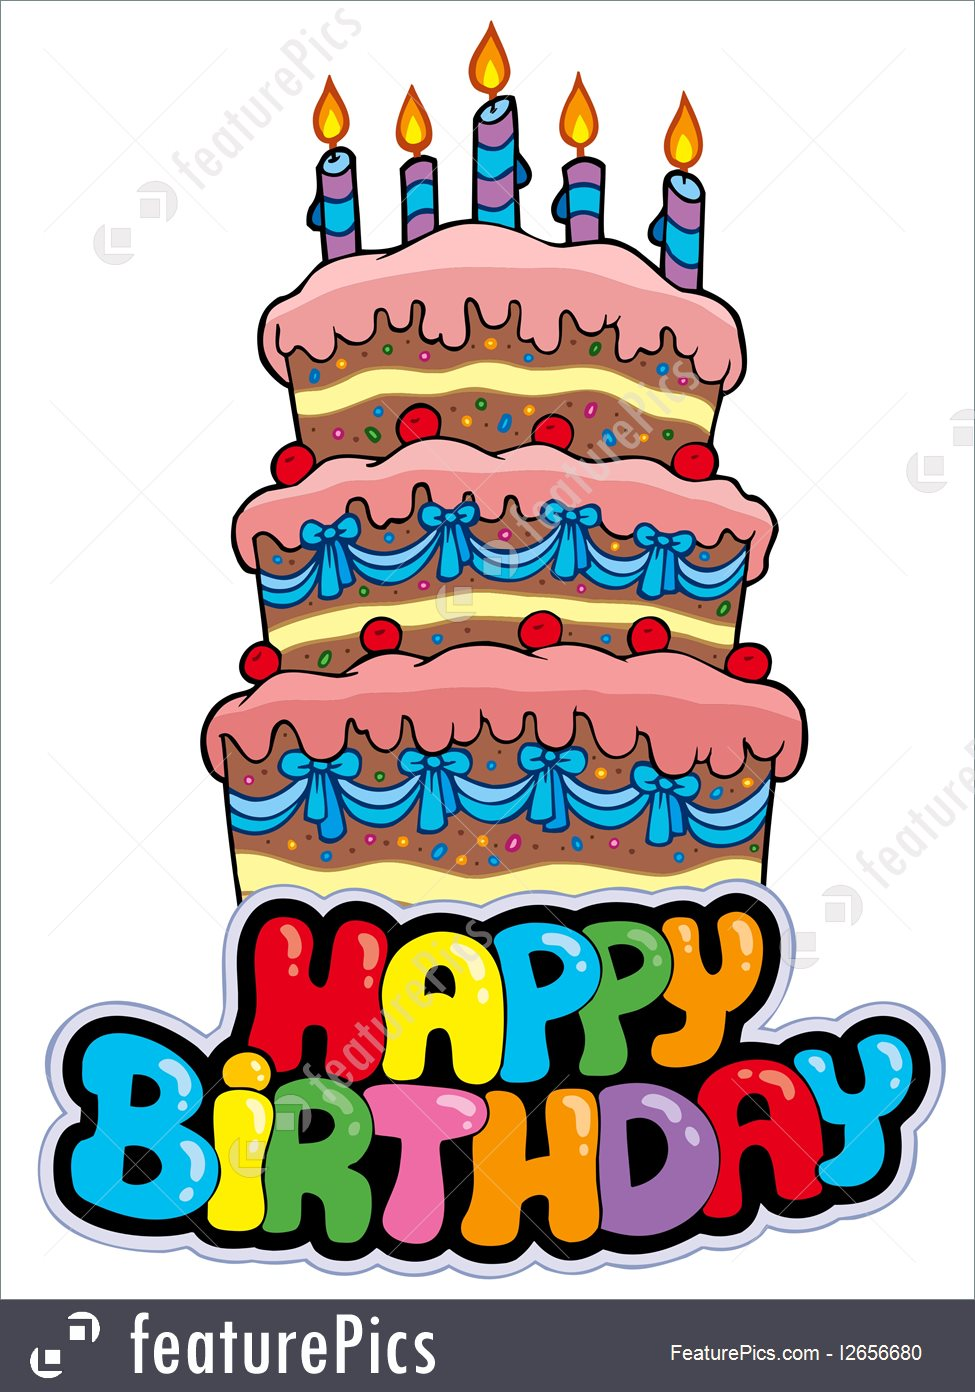 happy bday sign ; happy-birthday-cake-stock-illustration-1656680